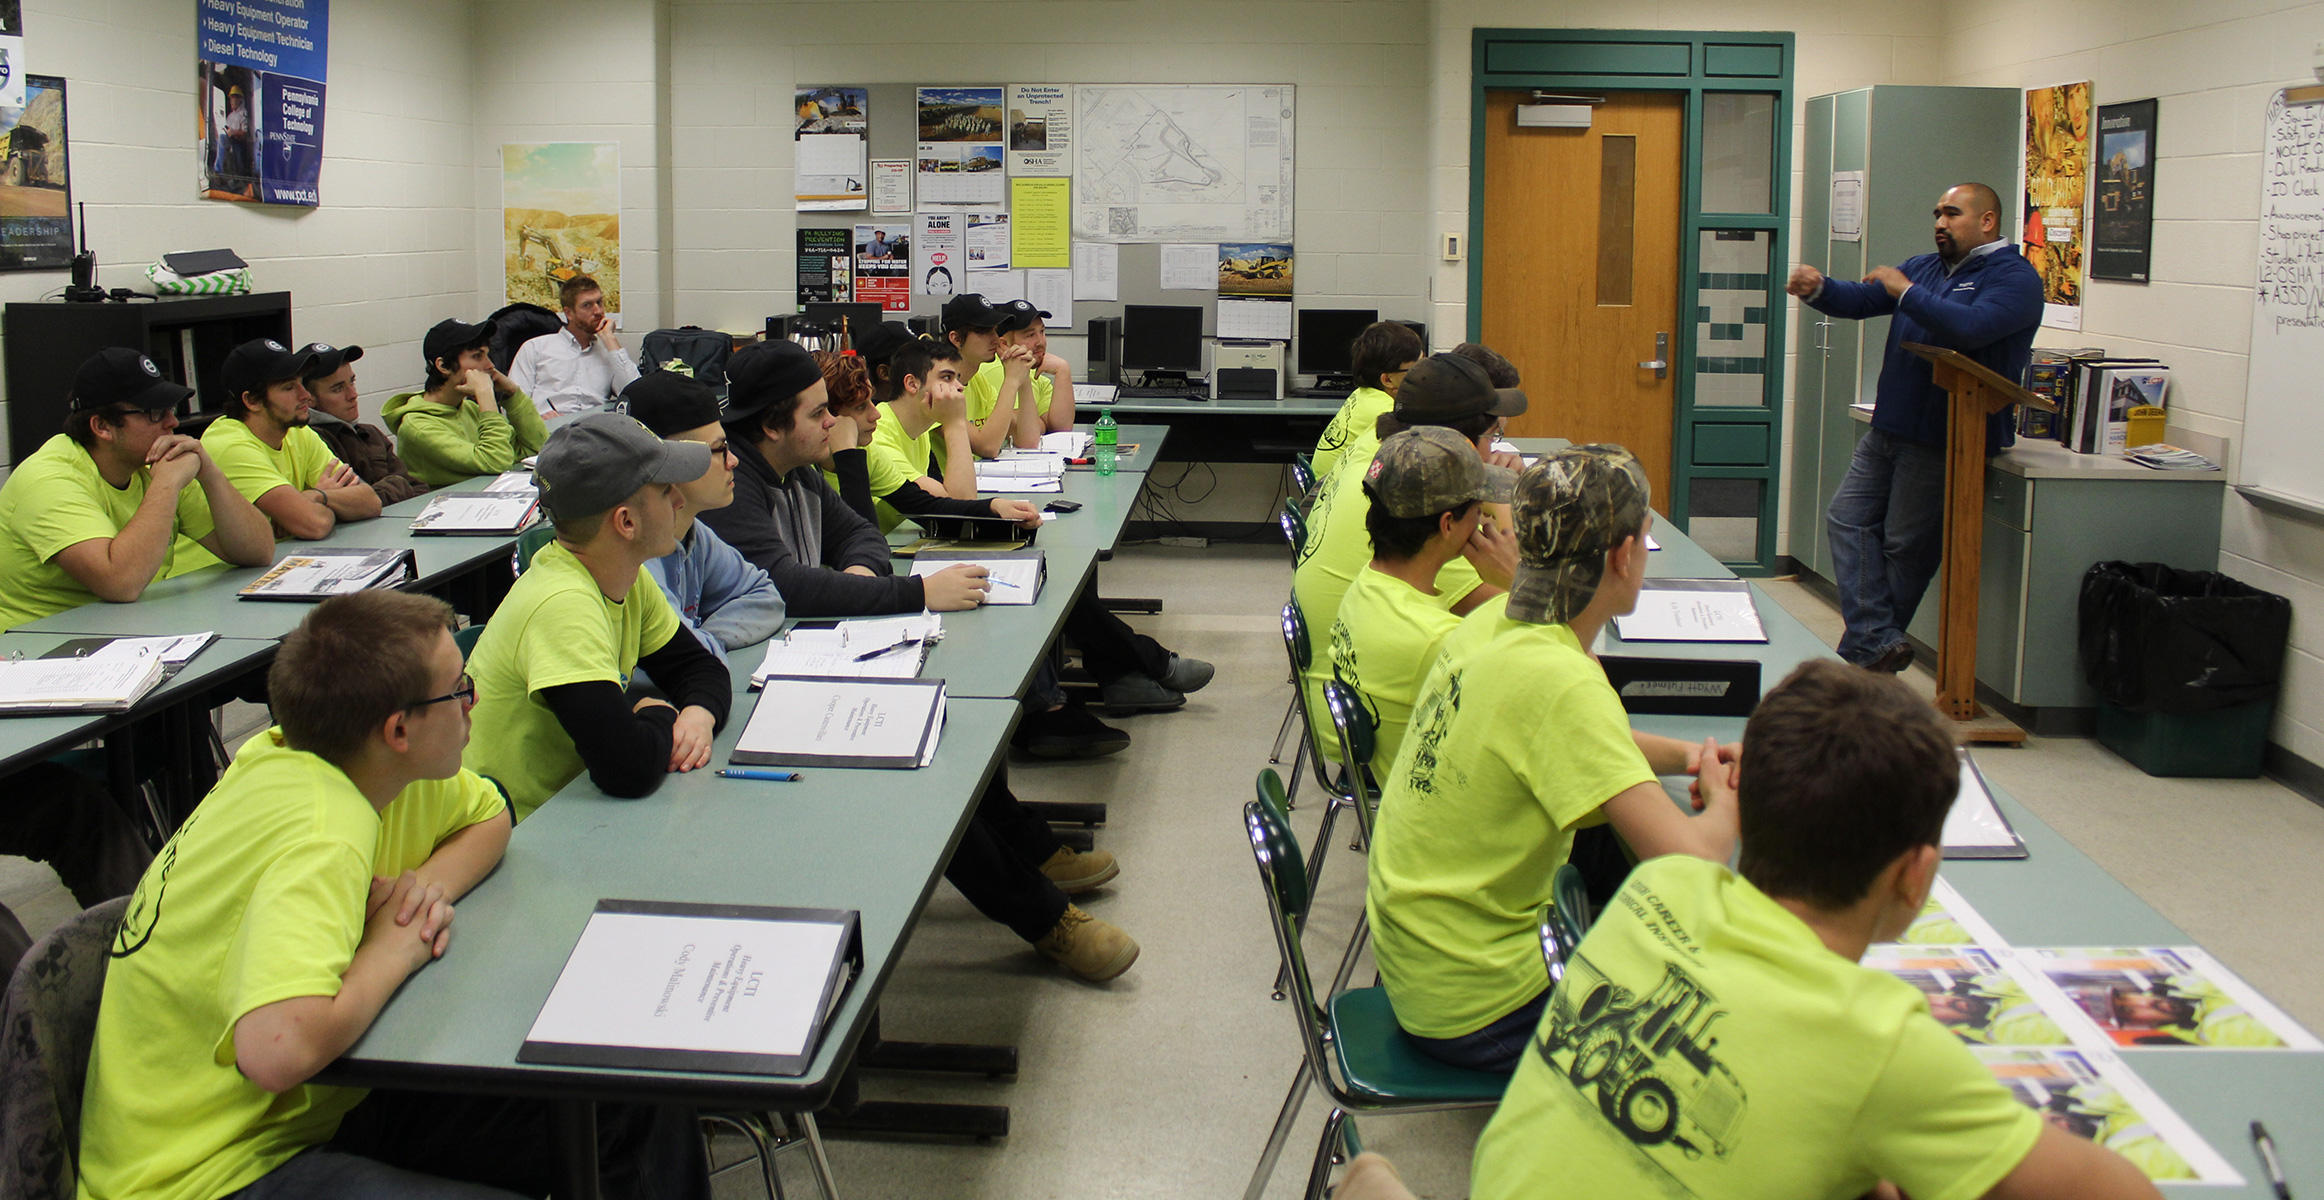 Students at Lehigh Career Technical Institute (LCTI) in Schnecksville, Pennsylvania